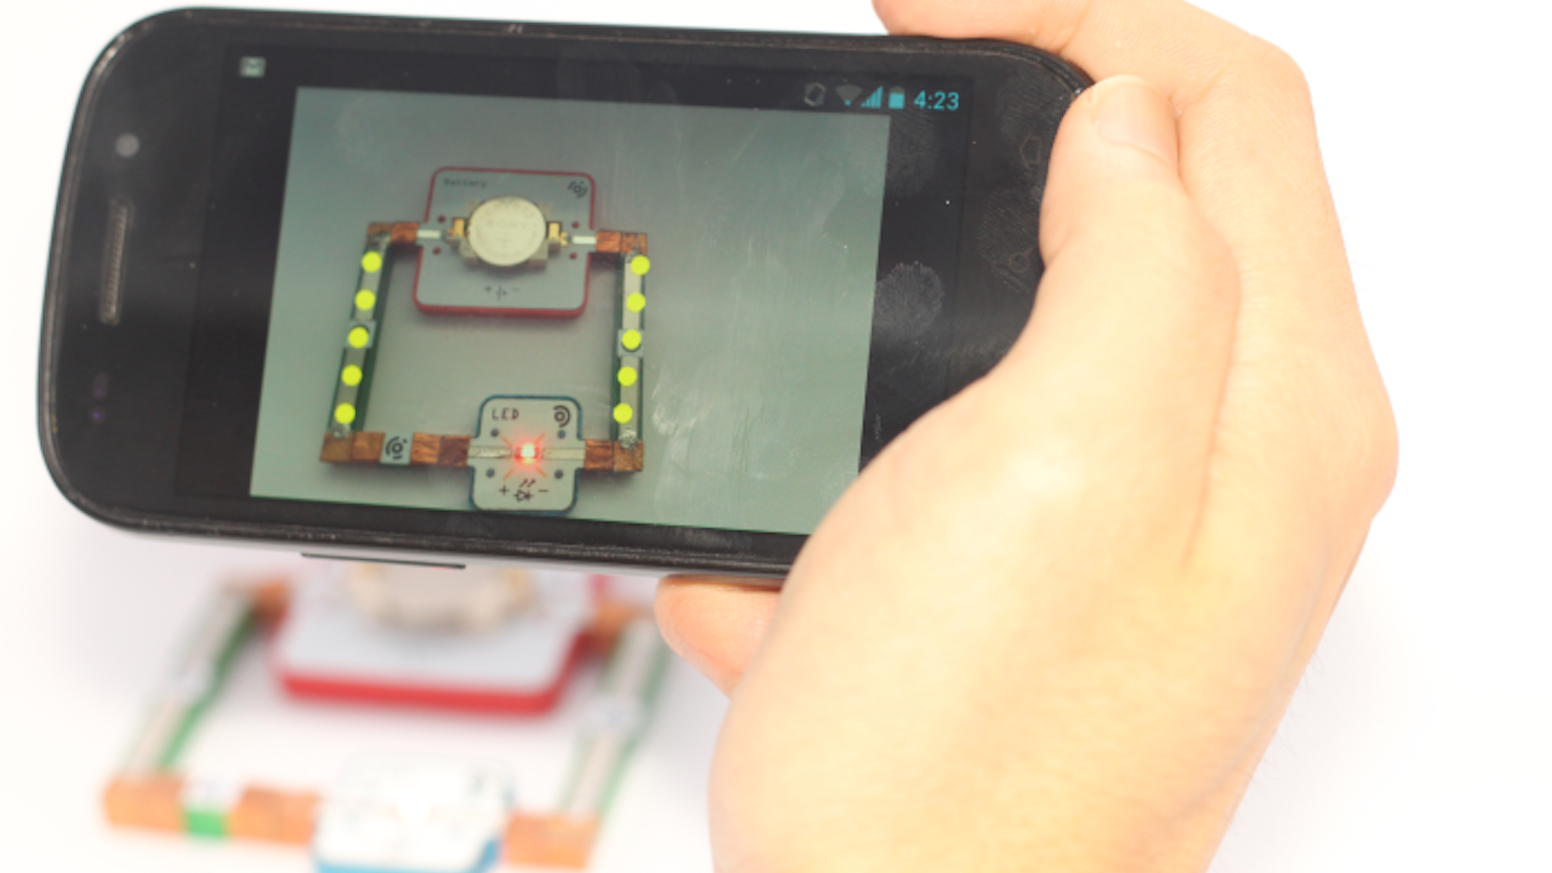 Kids learn electronics by building projects: combines electronic building blocks with the first-ever augmented reality tutor app.